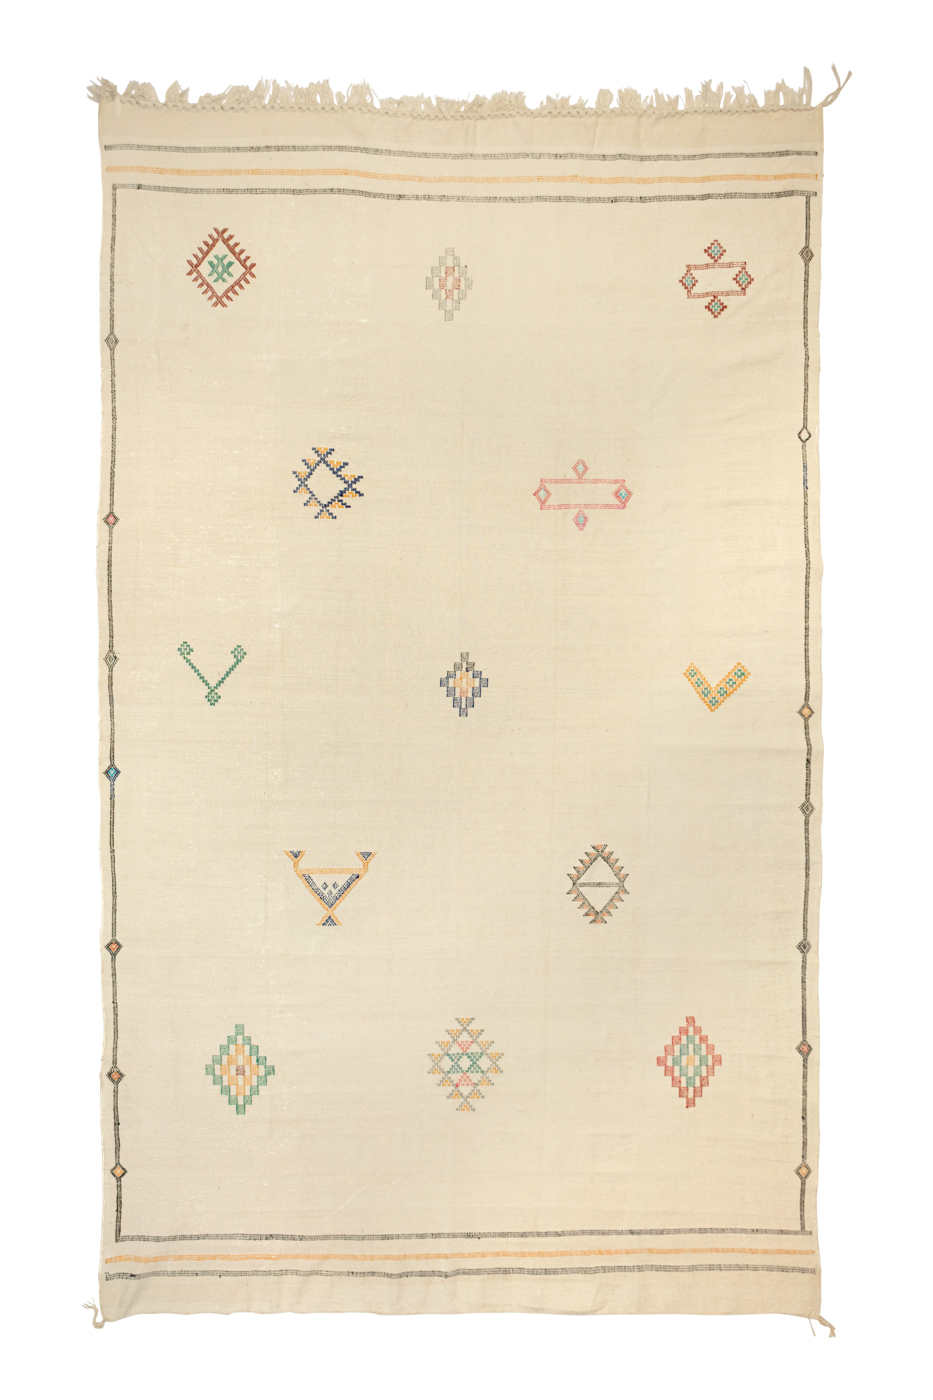 Moroccan silk cactus rug with geometric patterns